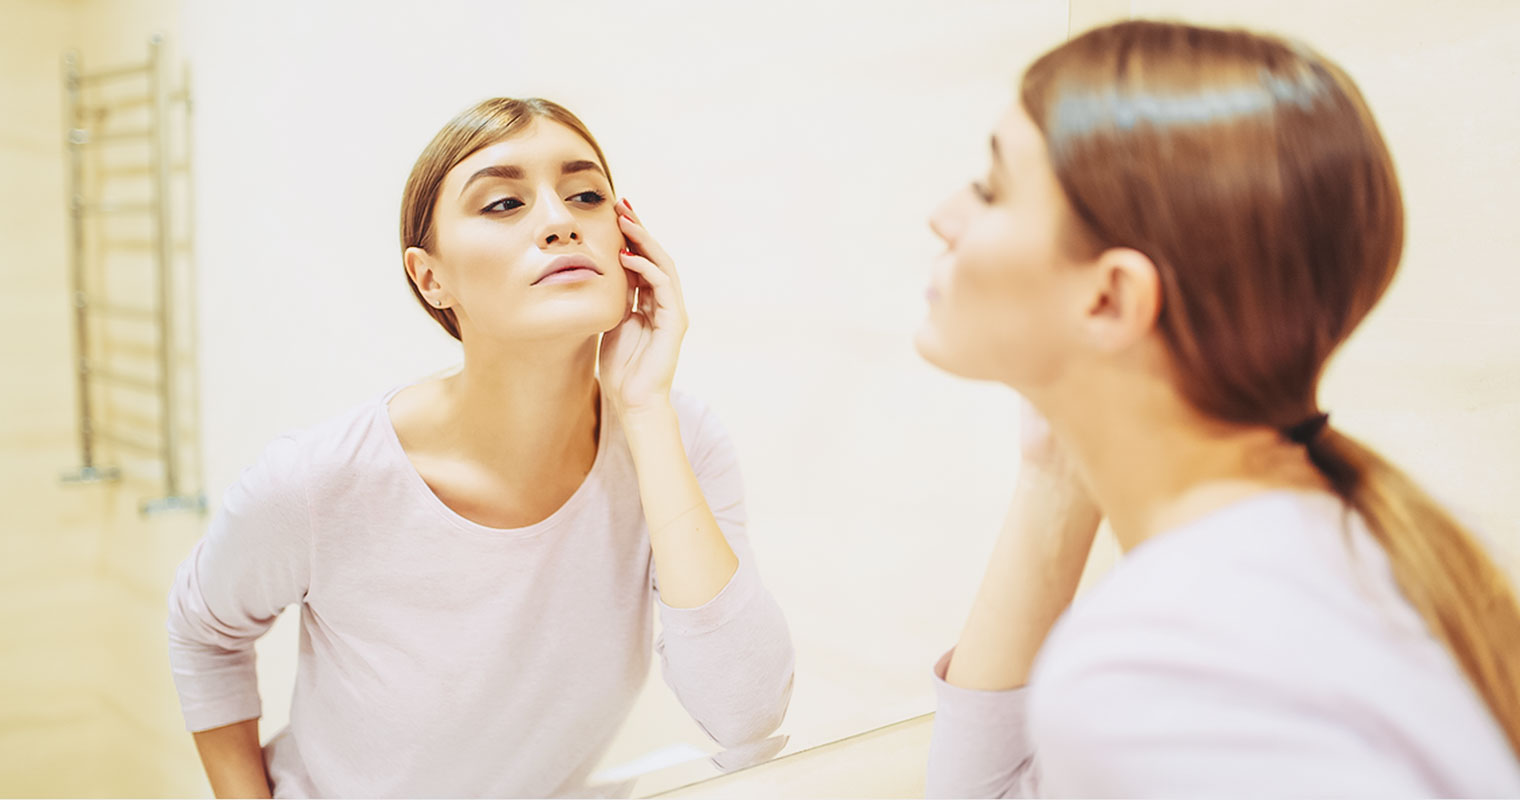 Woman checking her ACNE in a mirror